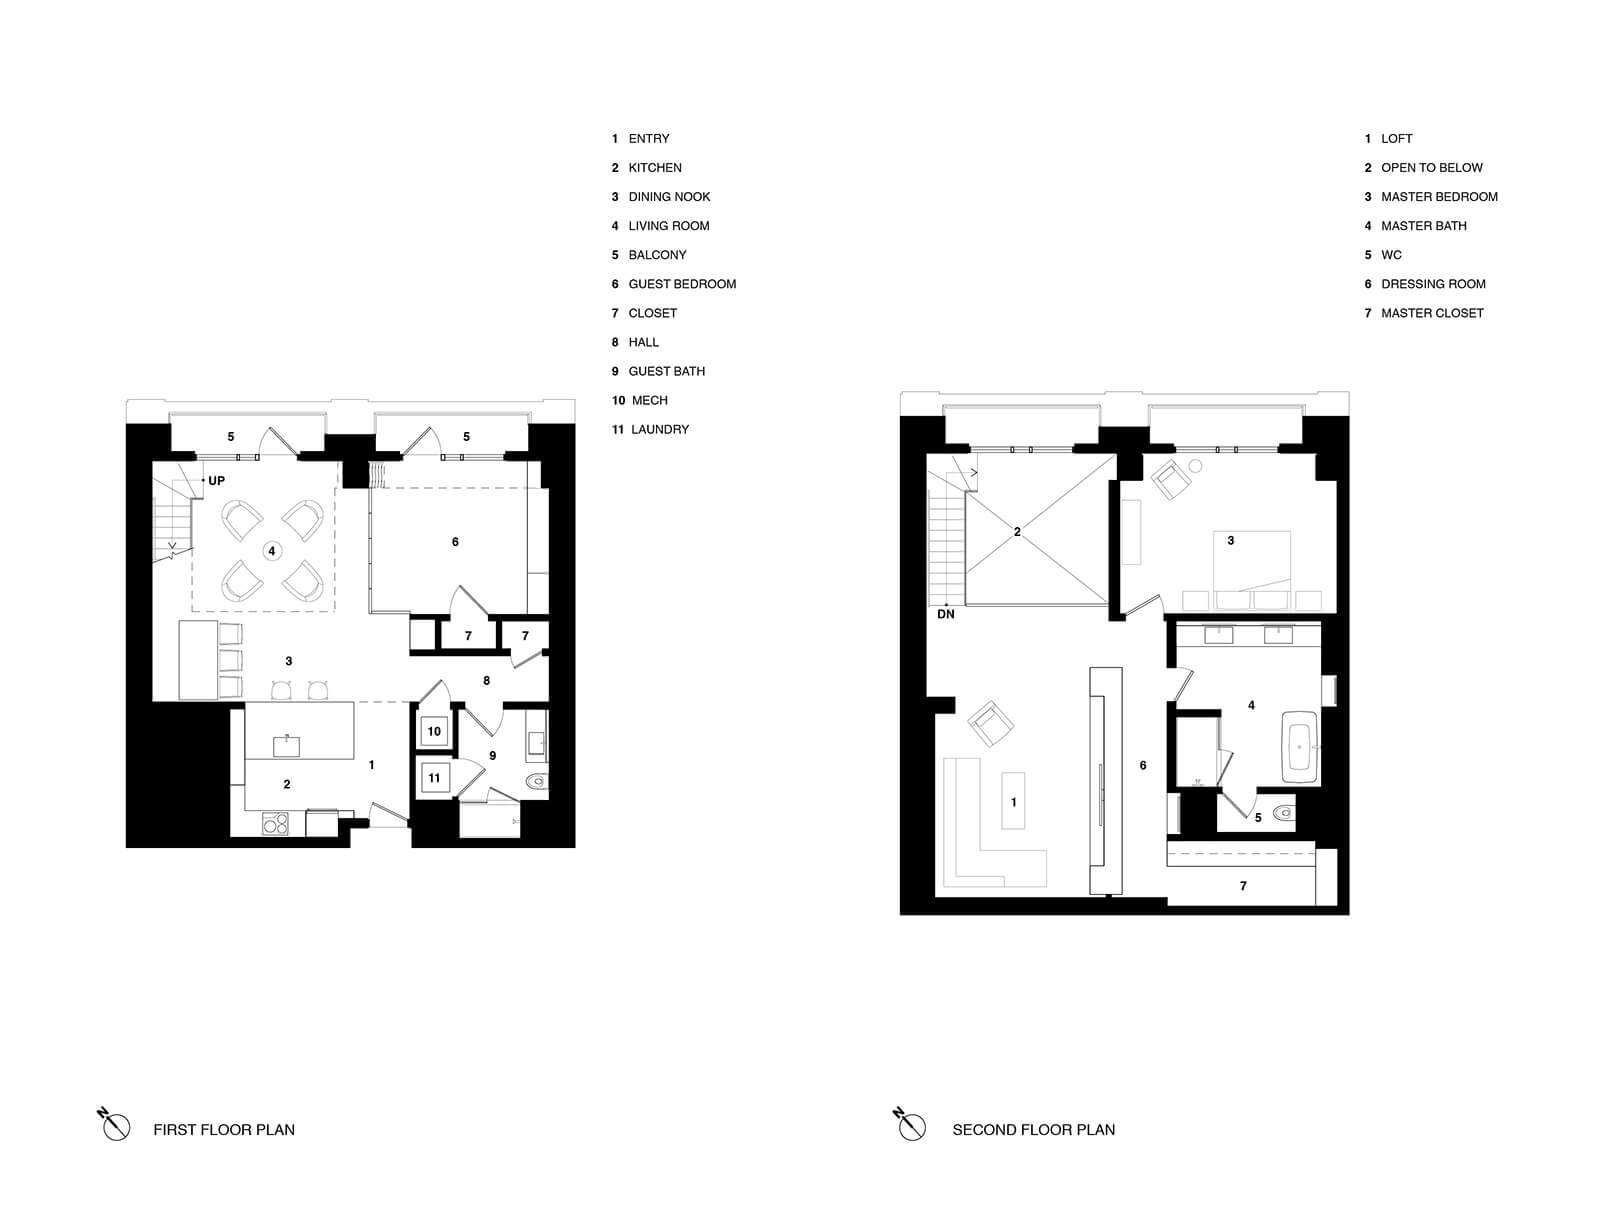 studio vara residential soma loft drawing plan